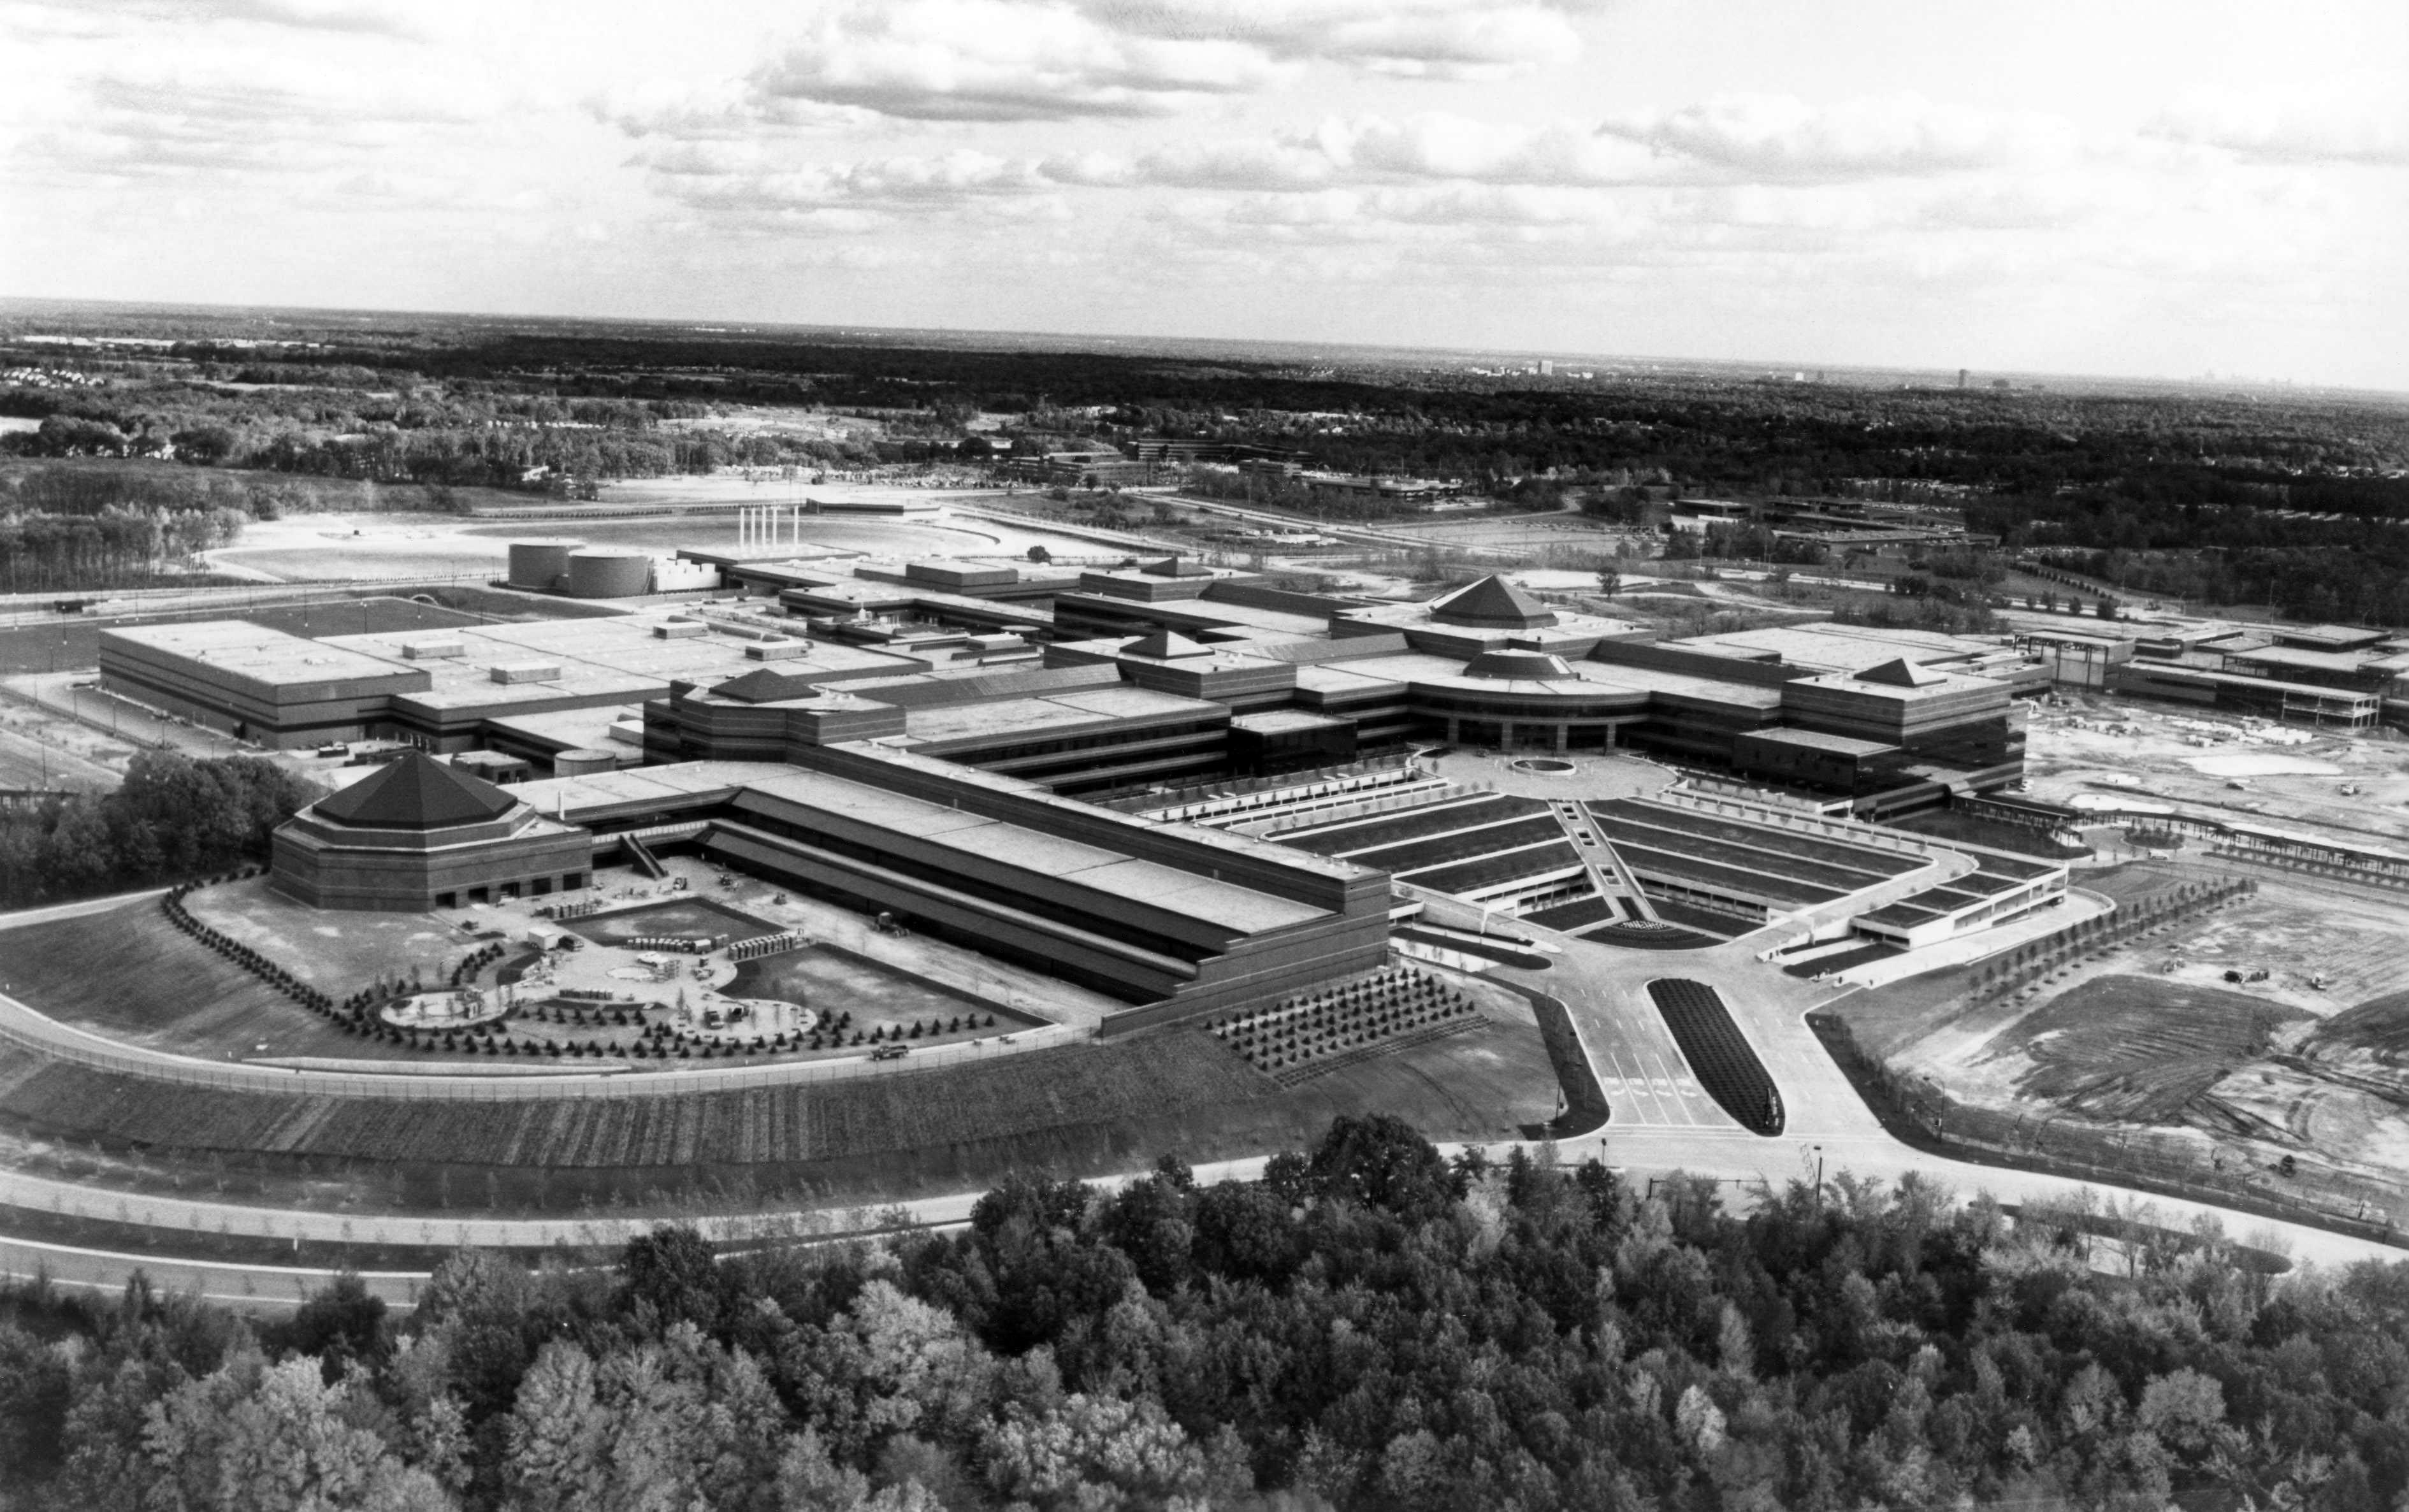 1991 CTC Aerial View